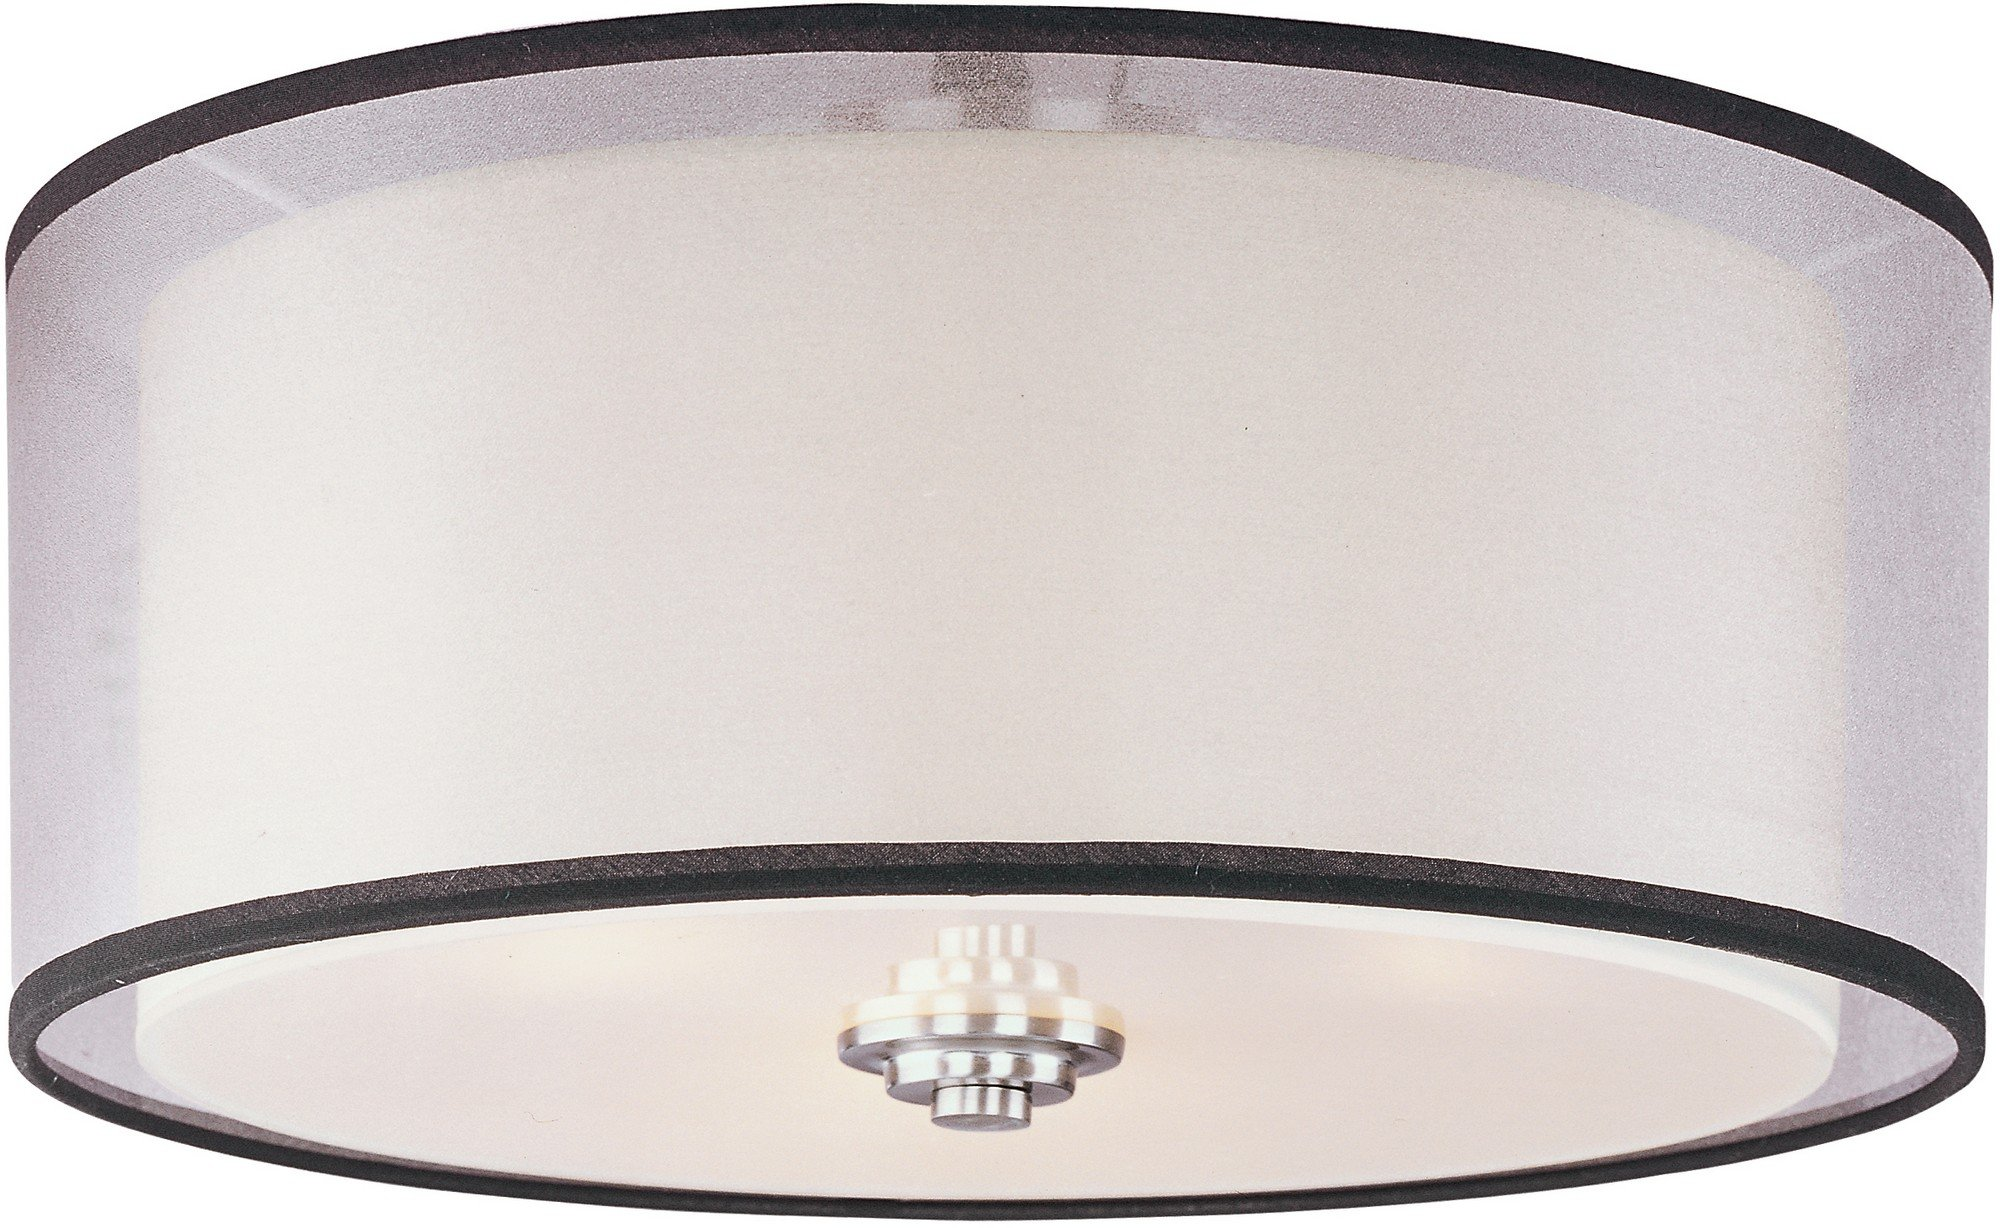 Maxim 23031SWSN Orion 3-Light Flush Mount, Satin Nickel Finish, Satin White Glass, MB Incandescent Incandescent Bulb , 8.5W Max., Wet Safety Rating, 3000K Color Temp, Shade Material, 595 Rated Lumens